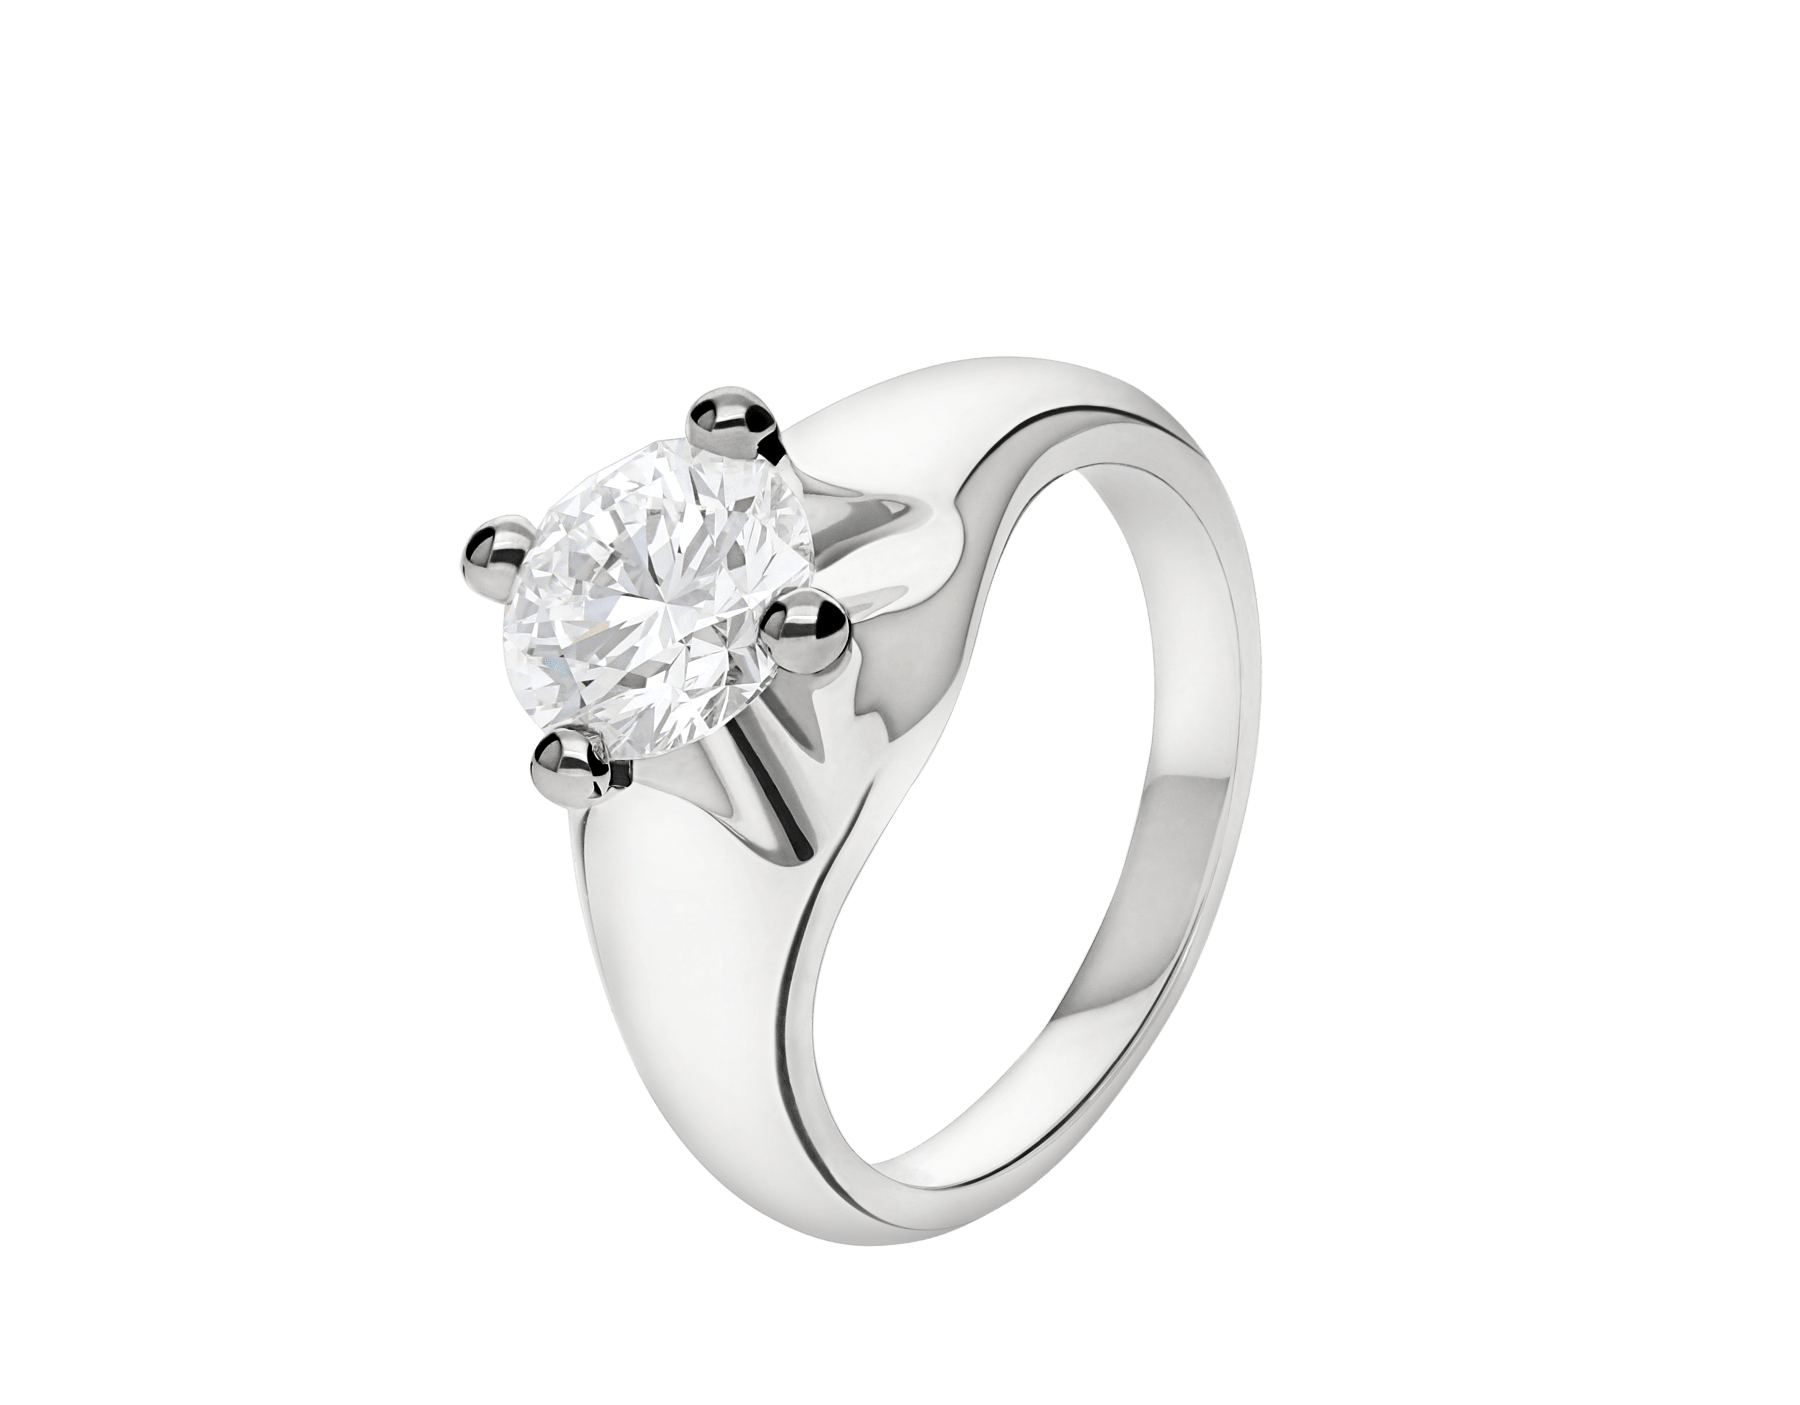 Corona platinum solitaire ring set with a round brilliant cut diamond 323743 image 1